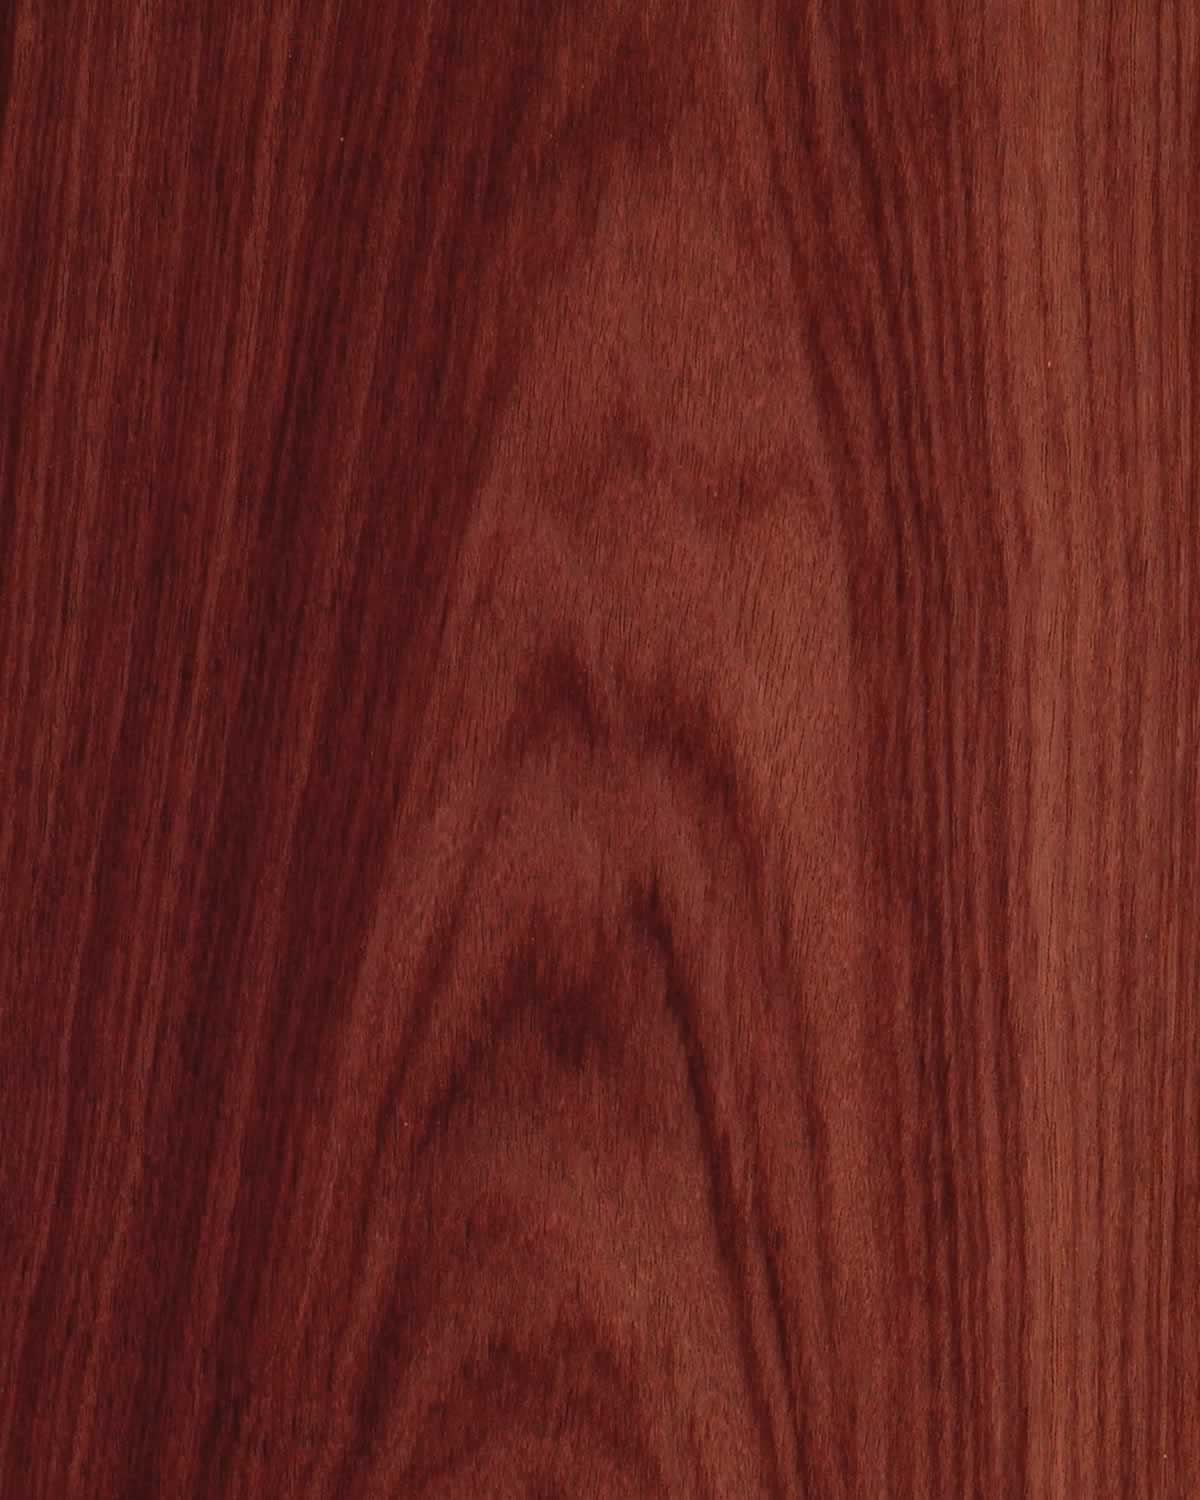 Kd Wallpaper Hd Ambienta Architectural Solutions Wood